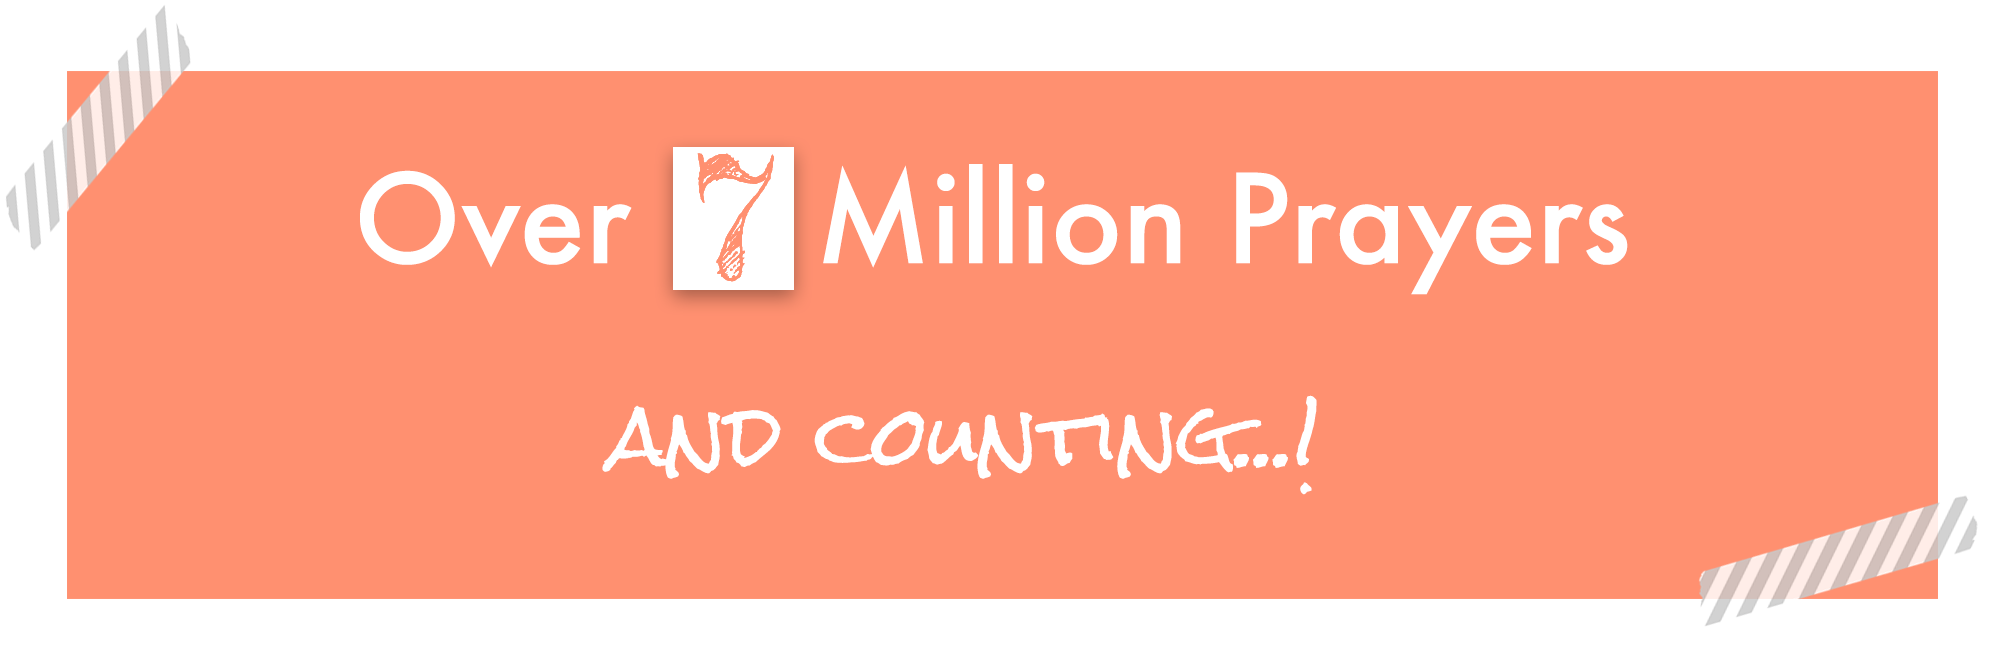 7 million prayer banner